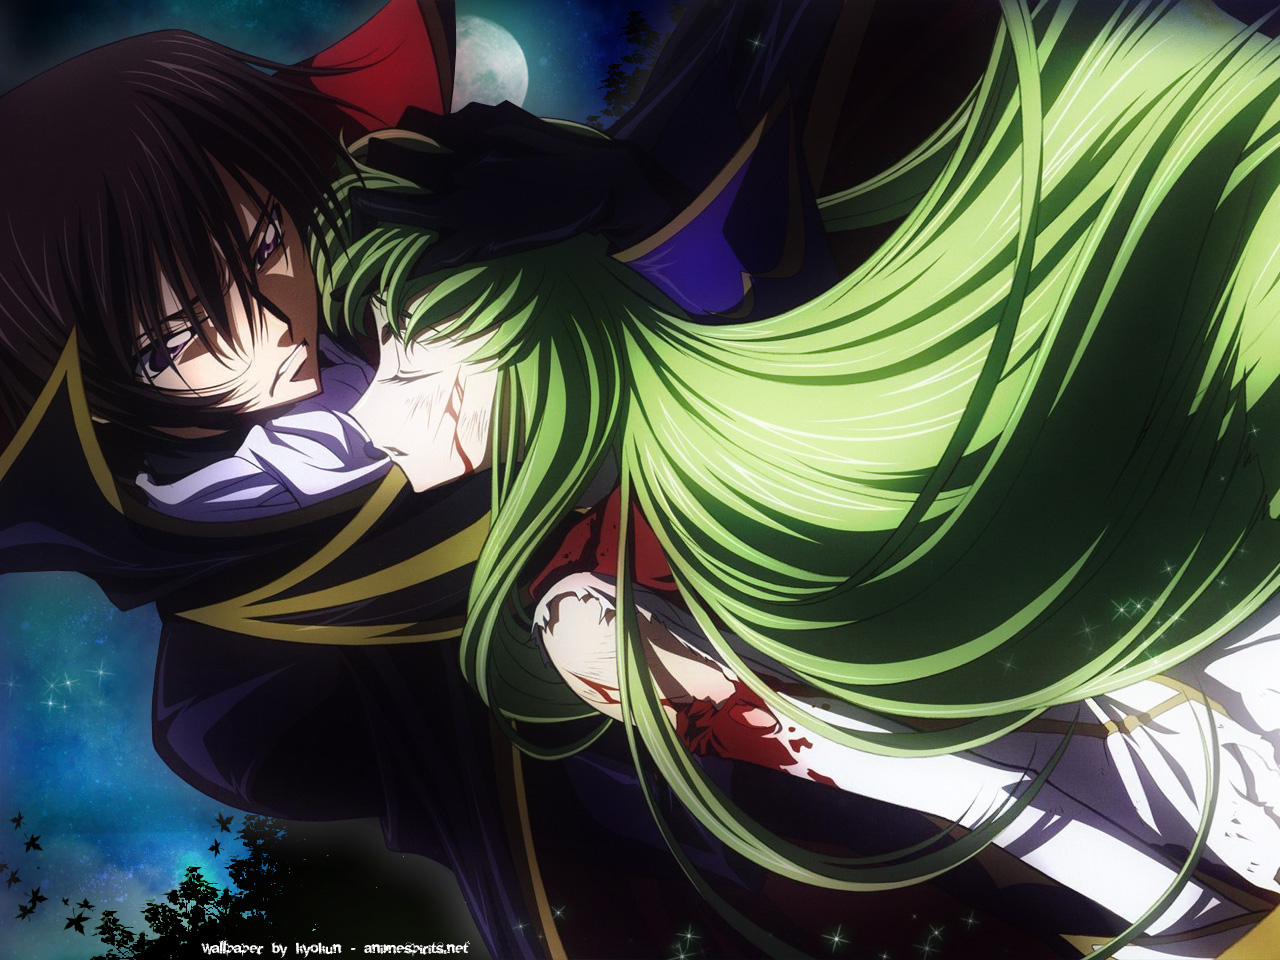 wallpaper lelouch - photo #37